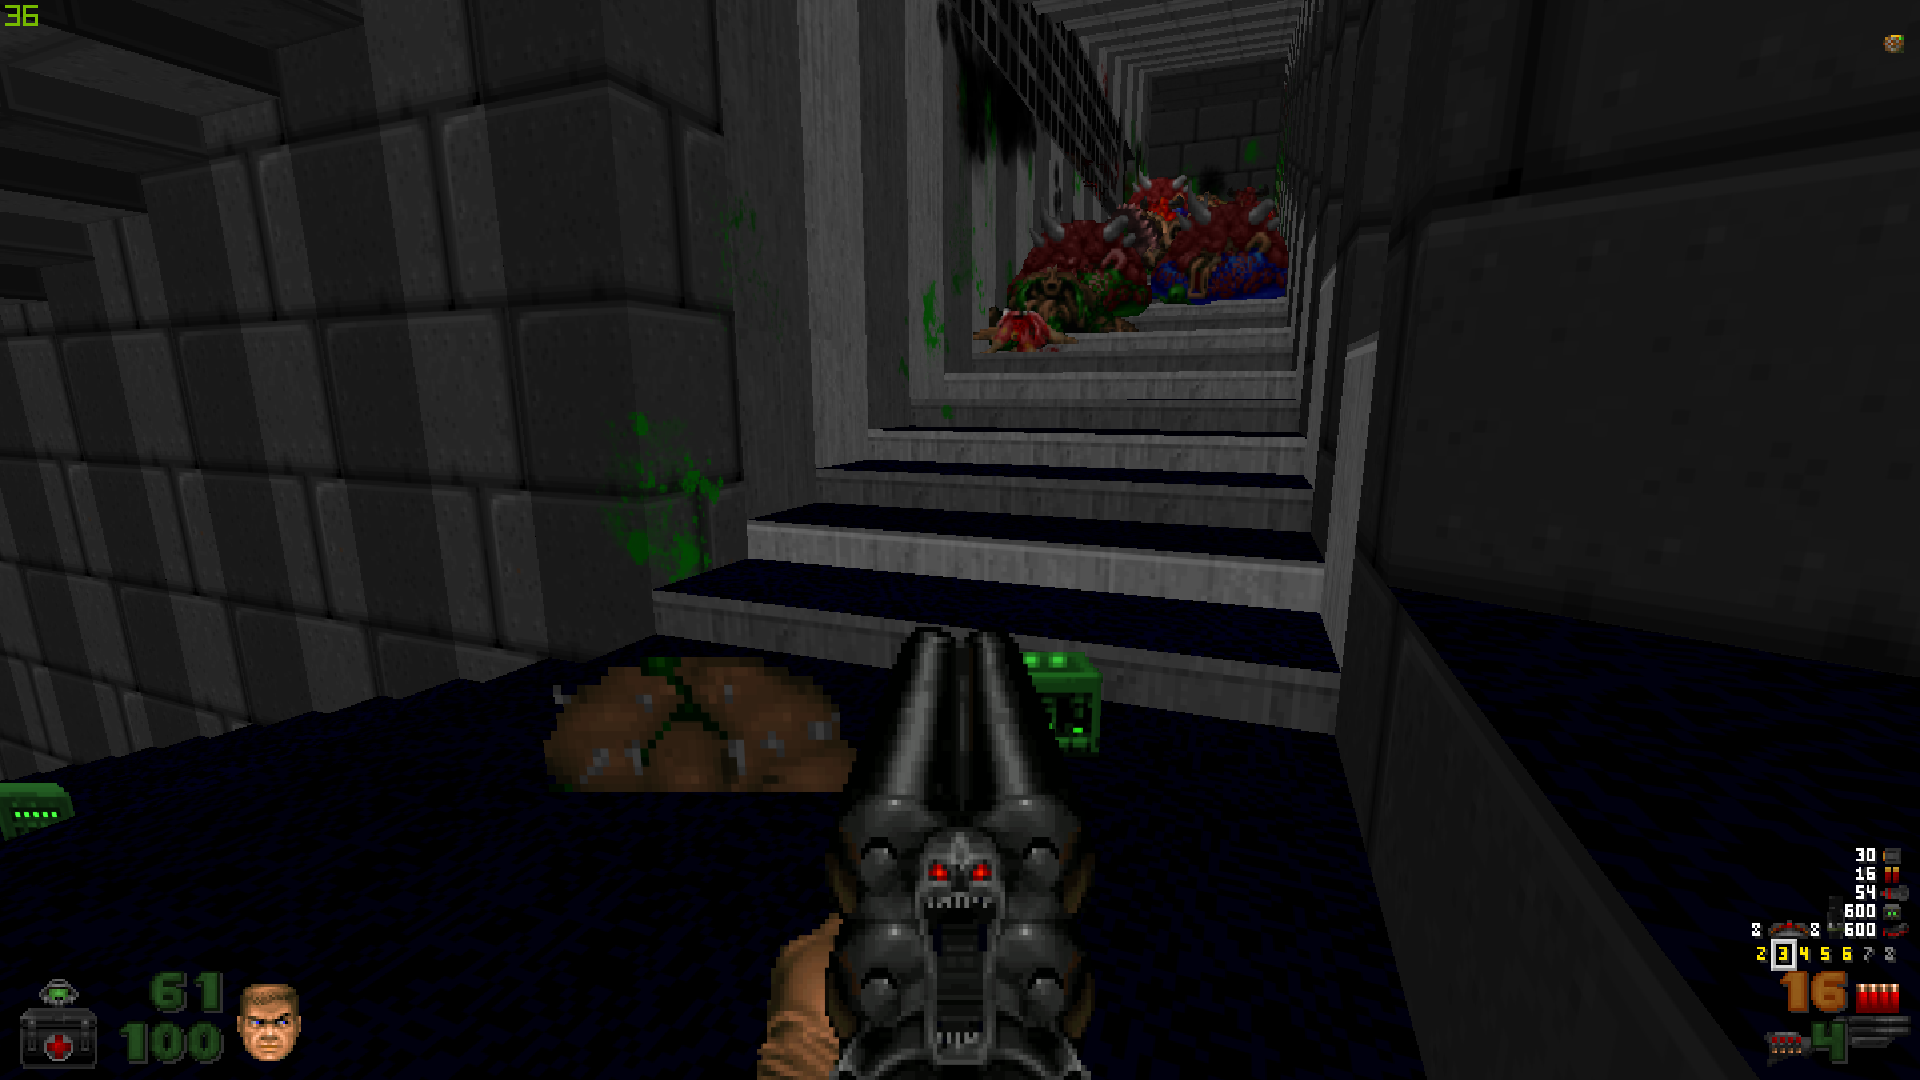 Stairs_crazy_0.png.ba07acba0e6e3a17975d6d21a57314ee.png